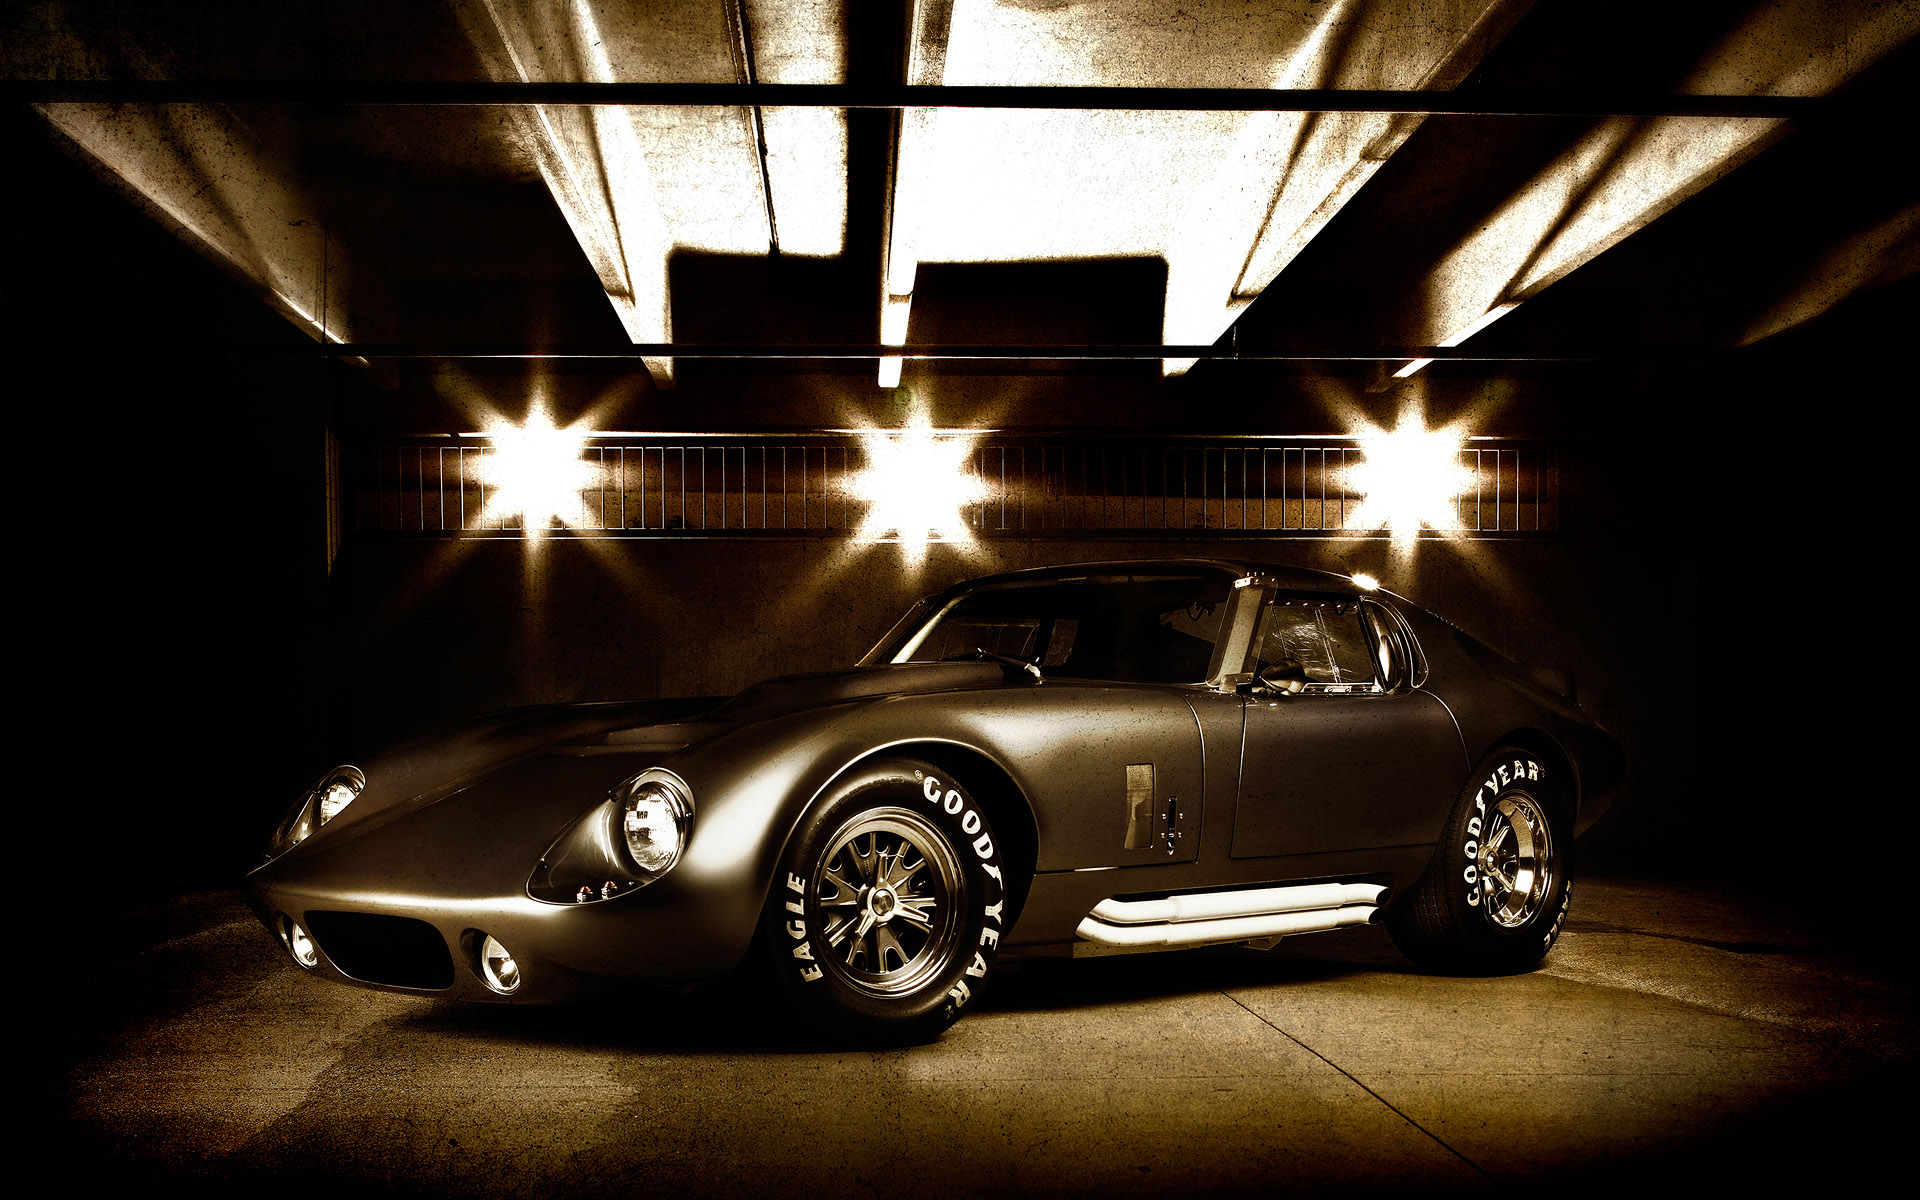 Shelby Daytona Coupe by Car Photographer